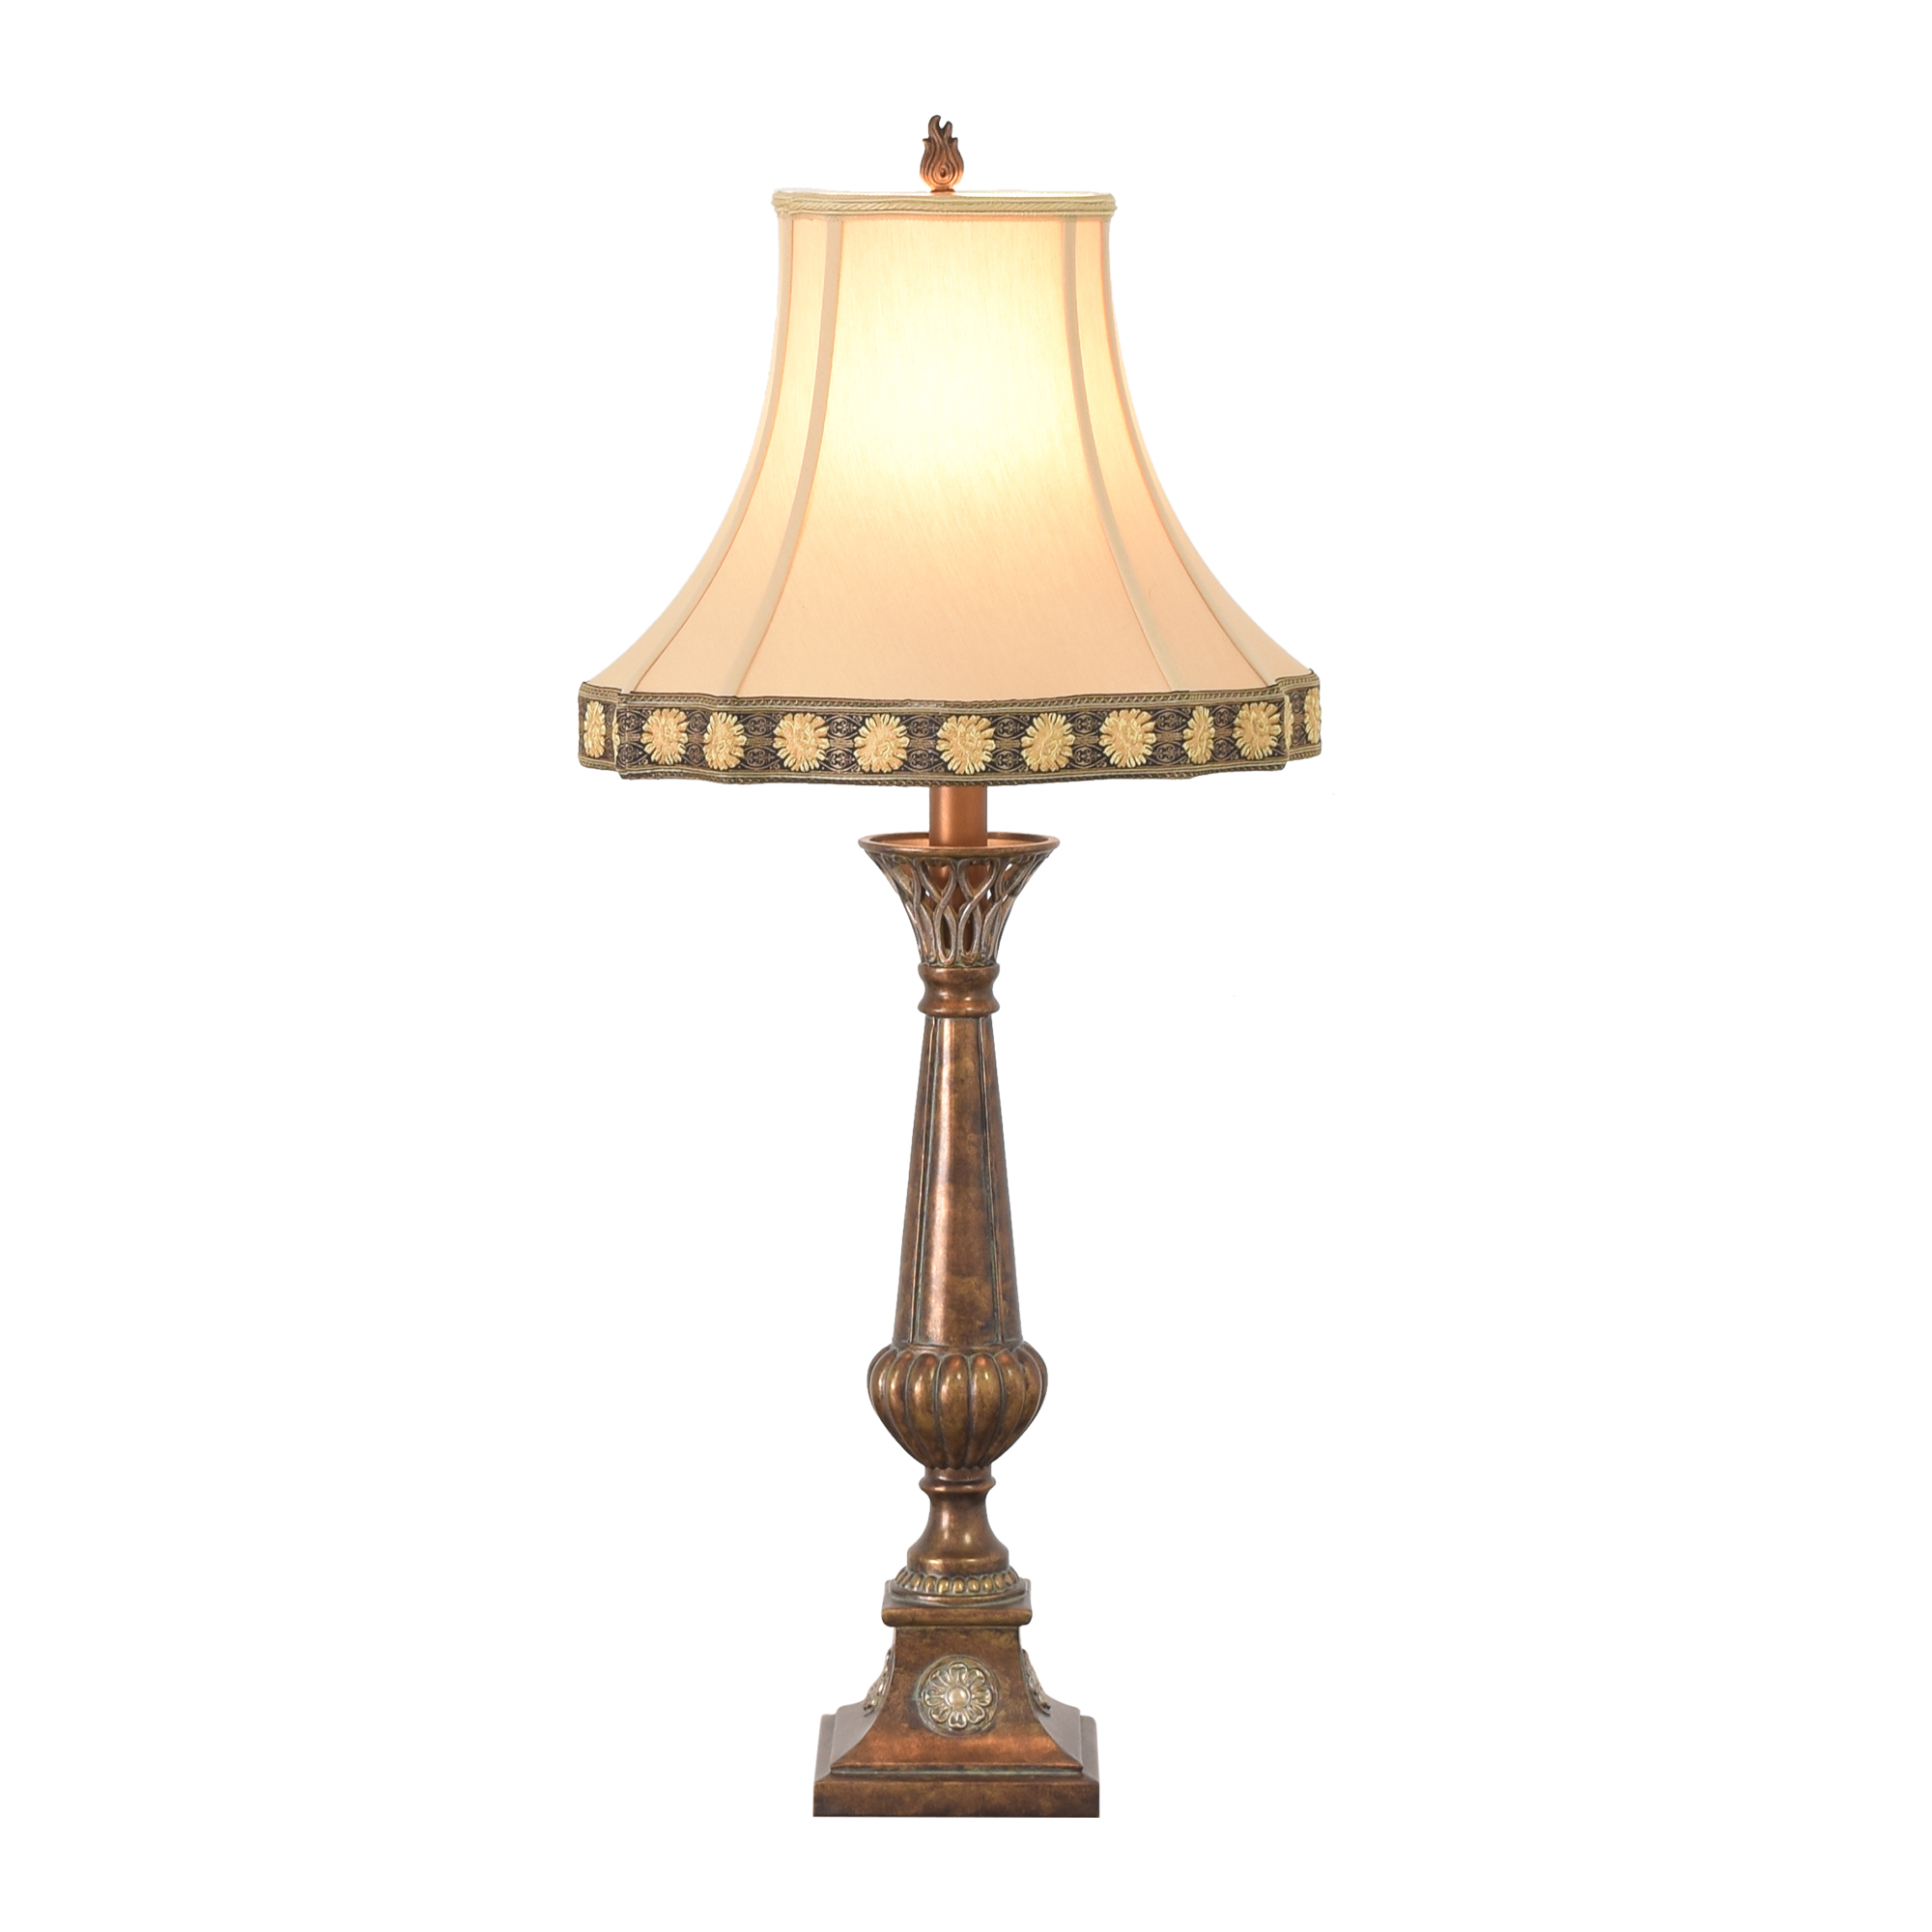 shop Ethan Allen Flame Table Lamp Ethan Allen Lamps